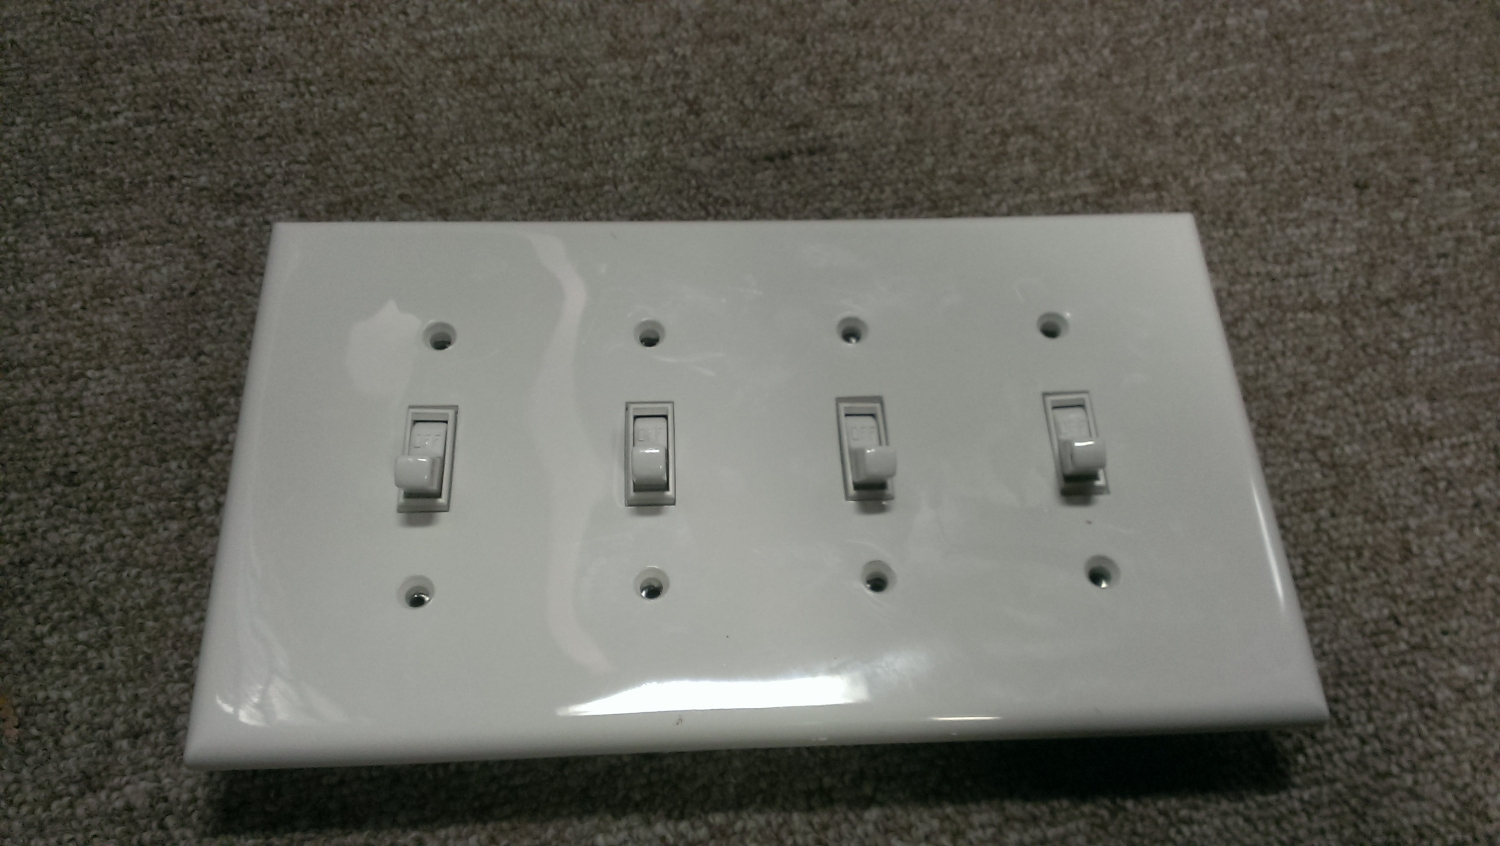 WeMo - Old Light Switches Uninstalled